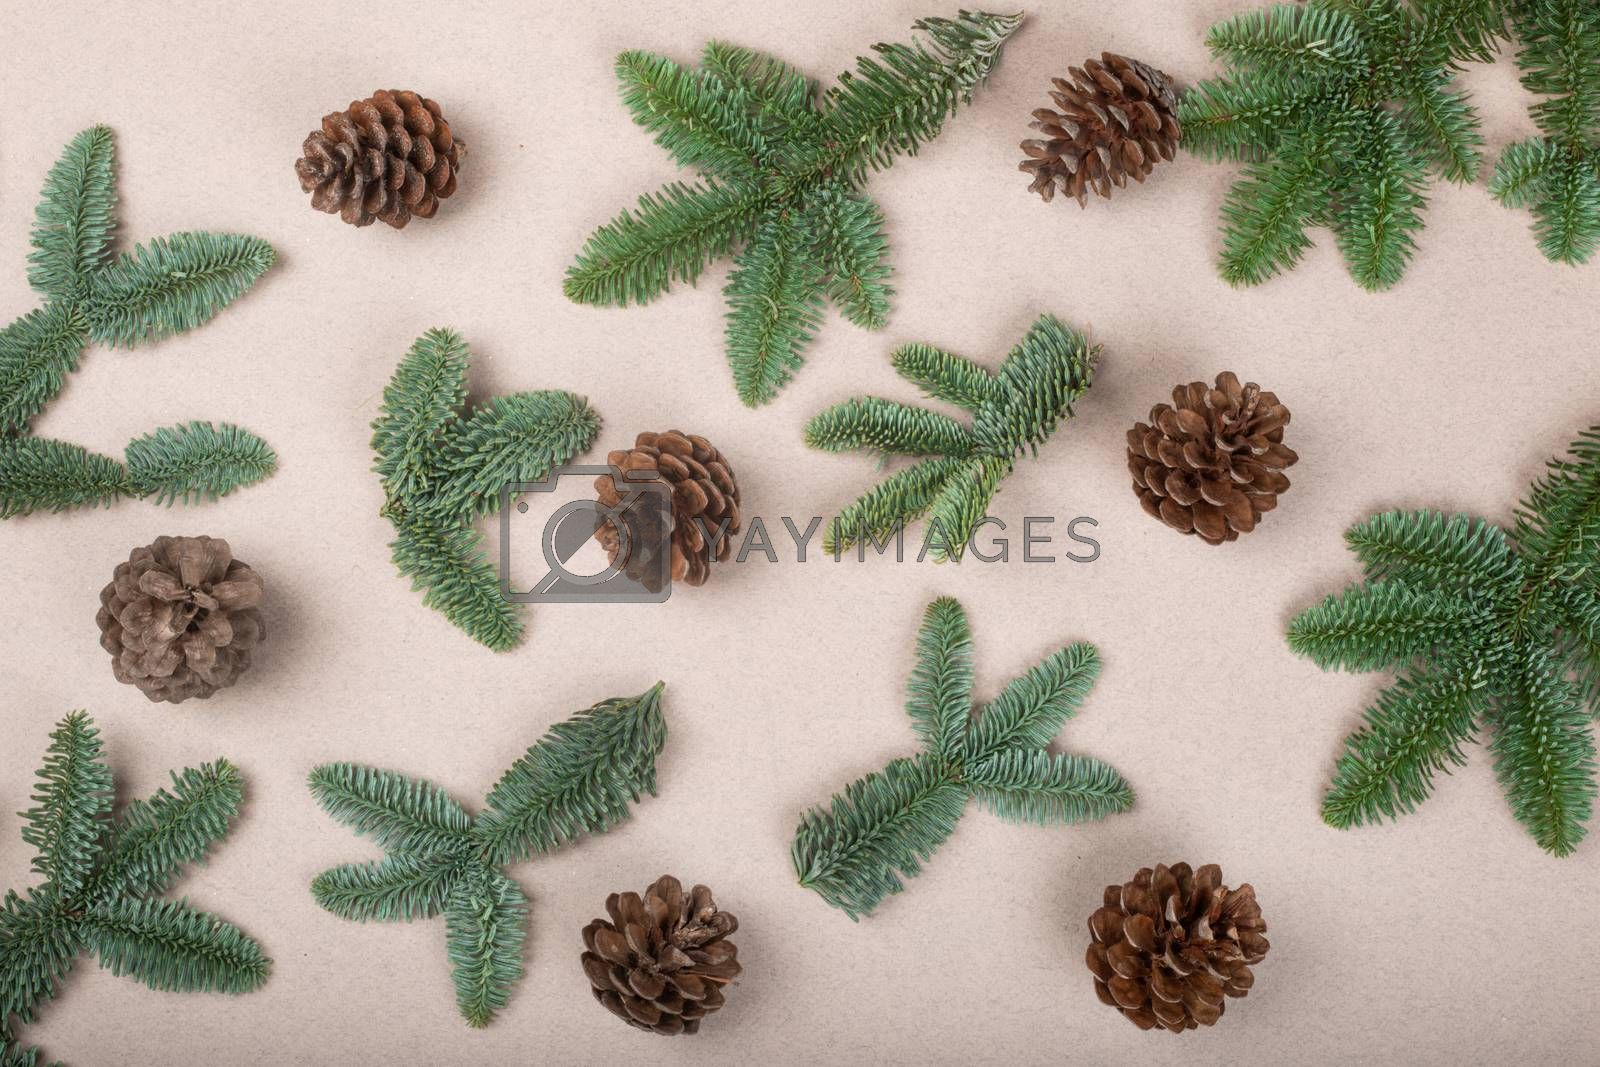 Royalty free image of Christmas card background by destillat